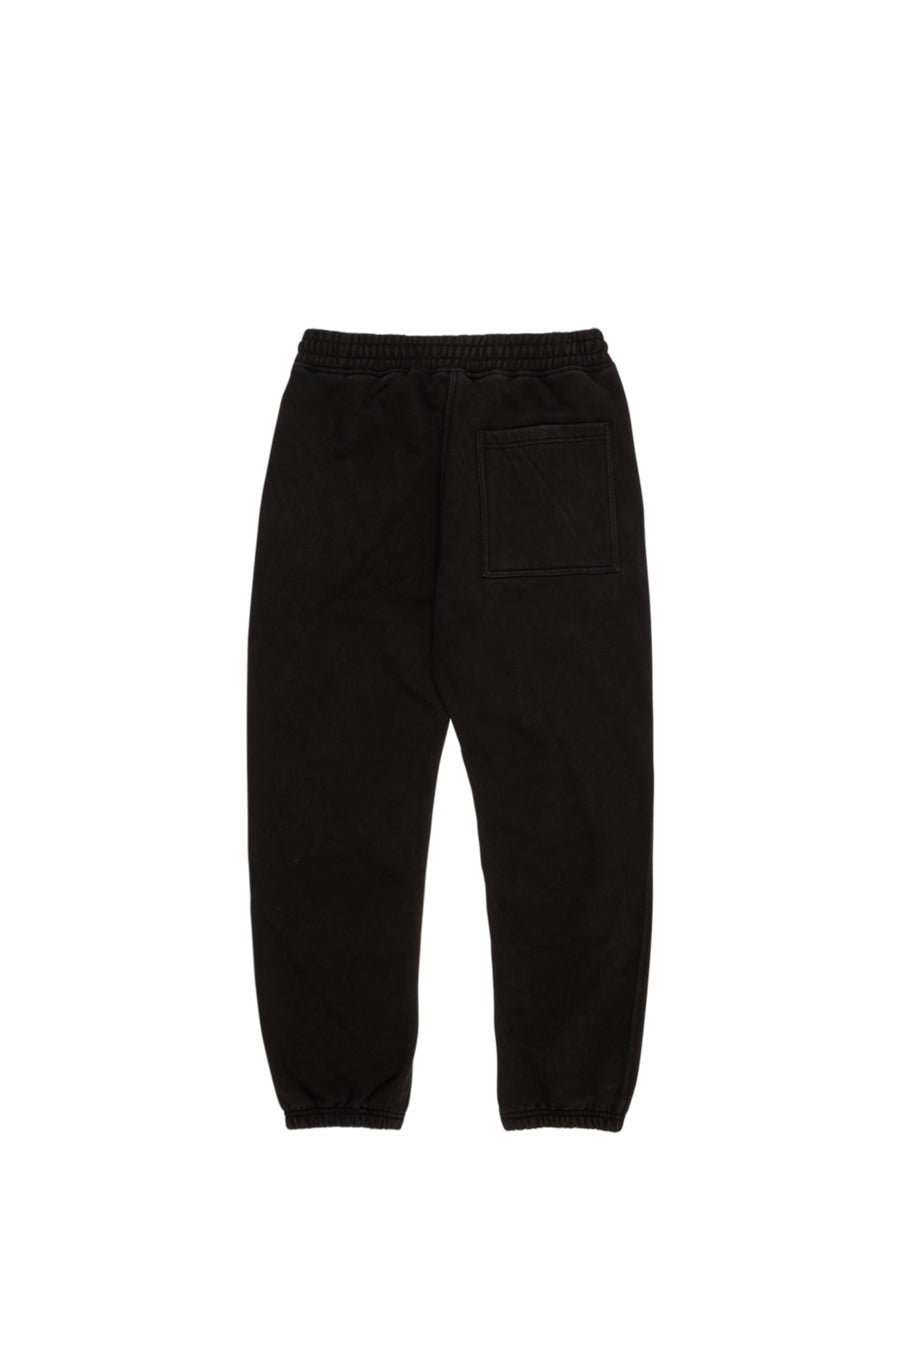 Pleasures - Black Burnout Dyed Sweatpants | 1032 SPACE